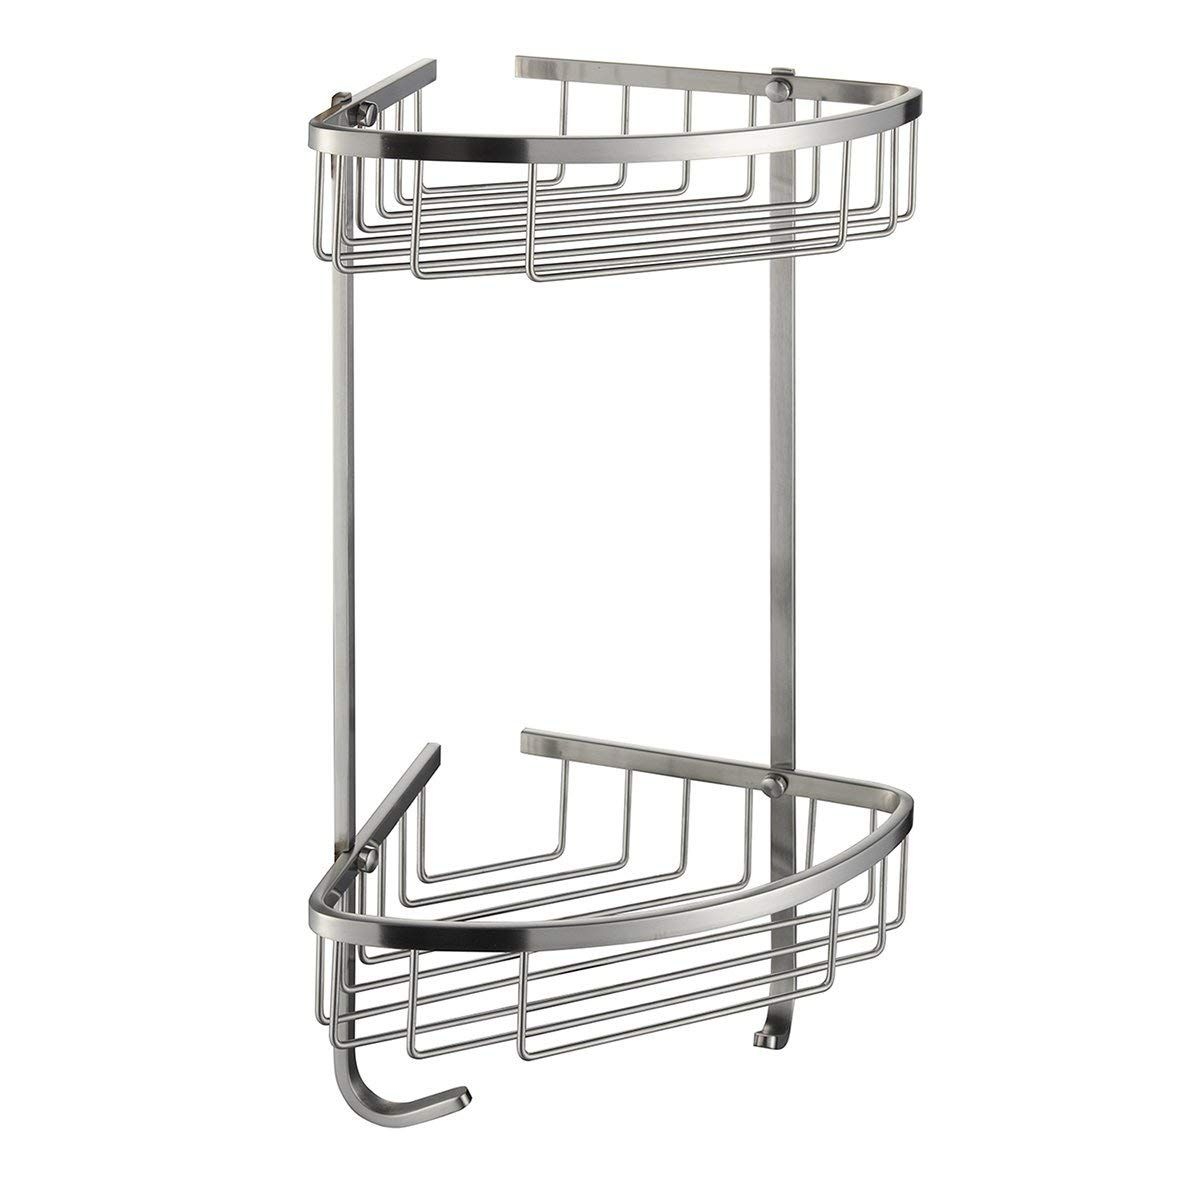 10 Best Corner Shower Caddy In 2020 With Buying Guides With